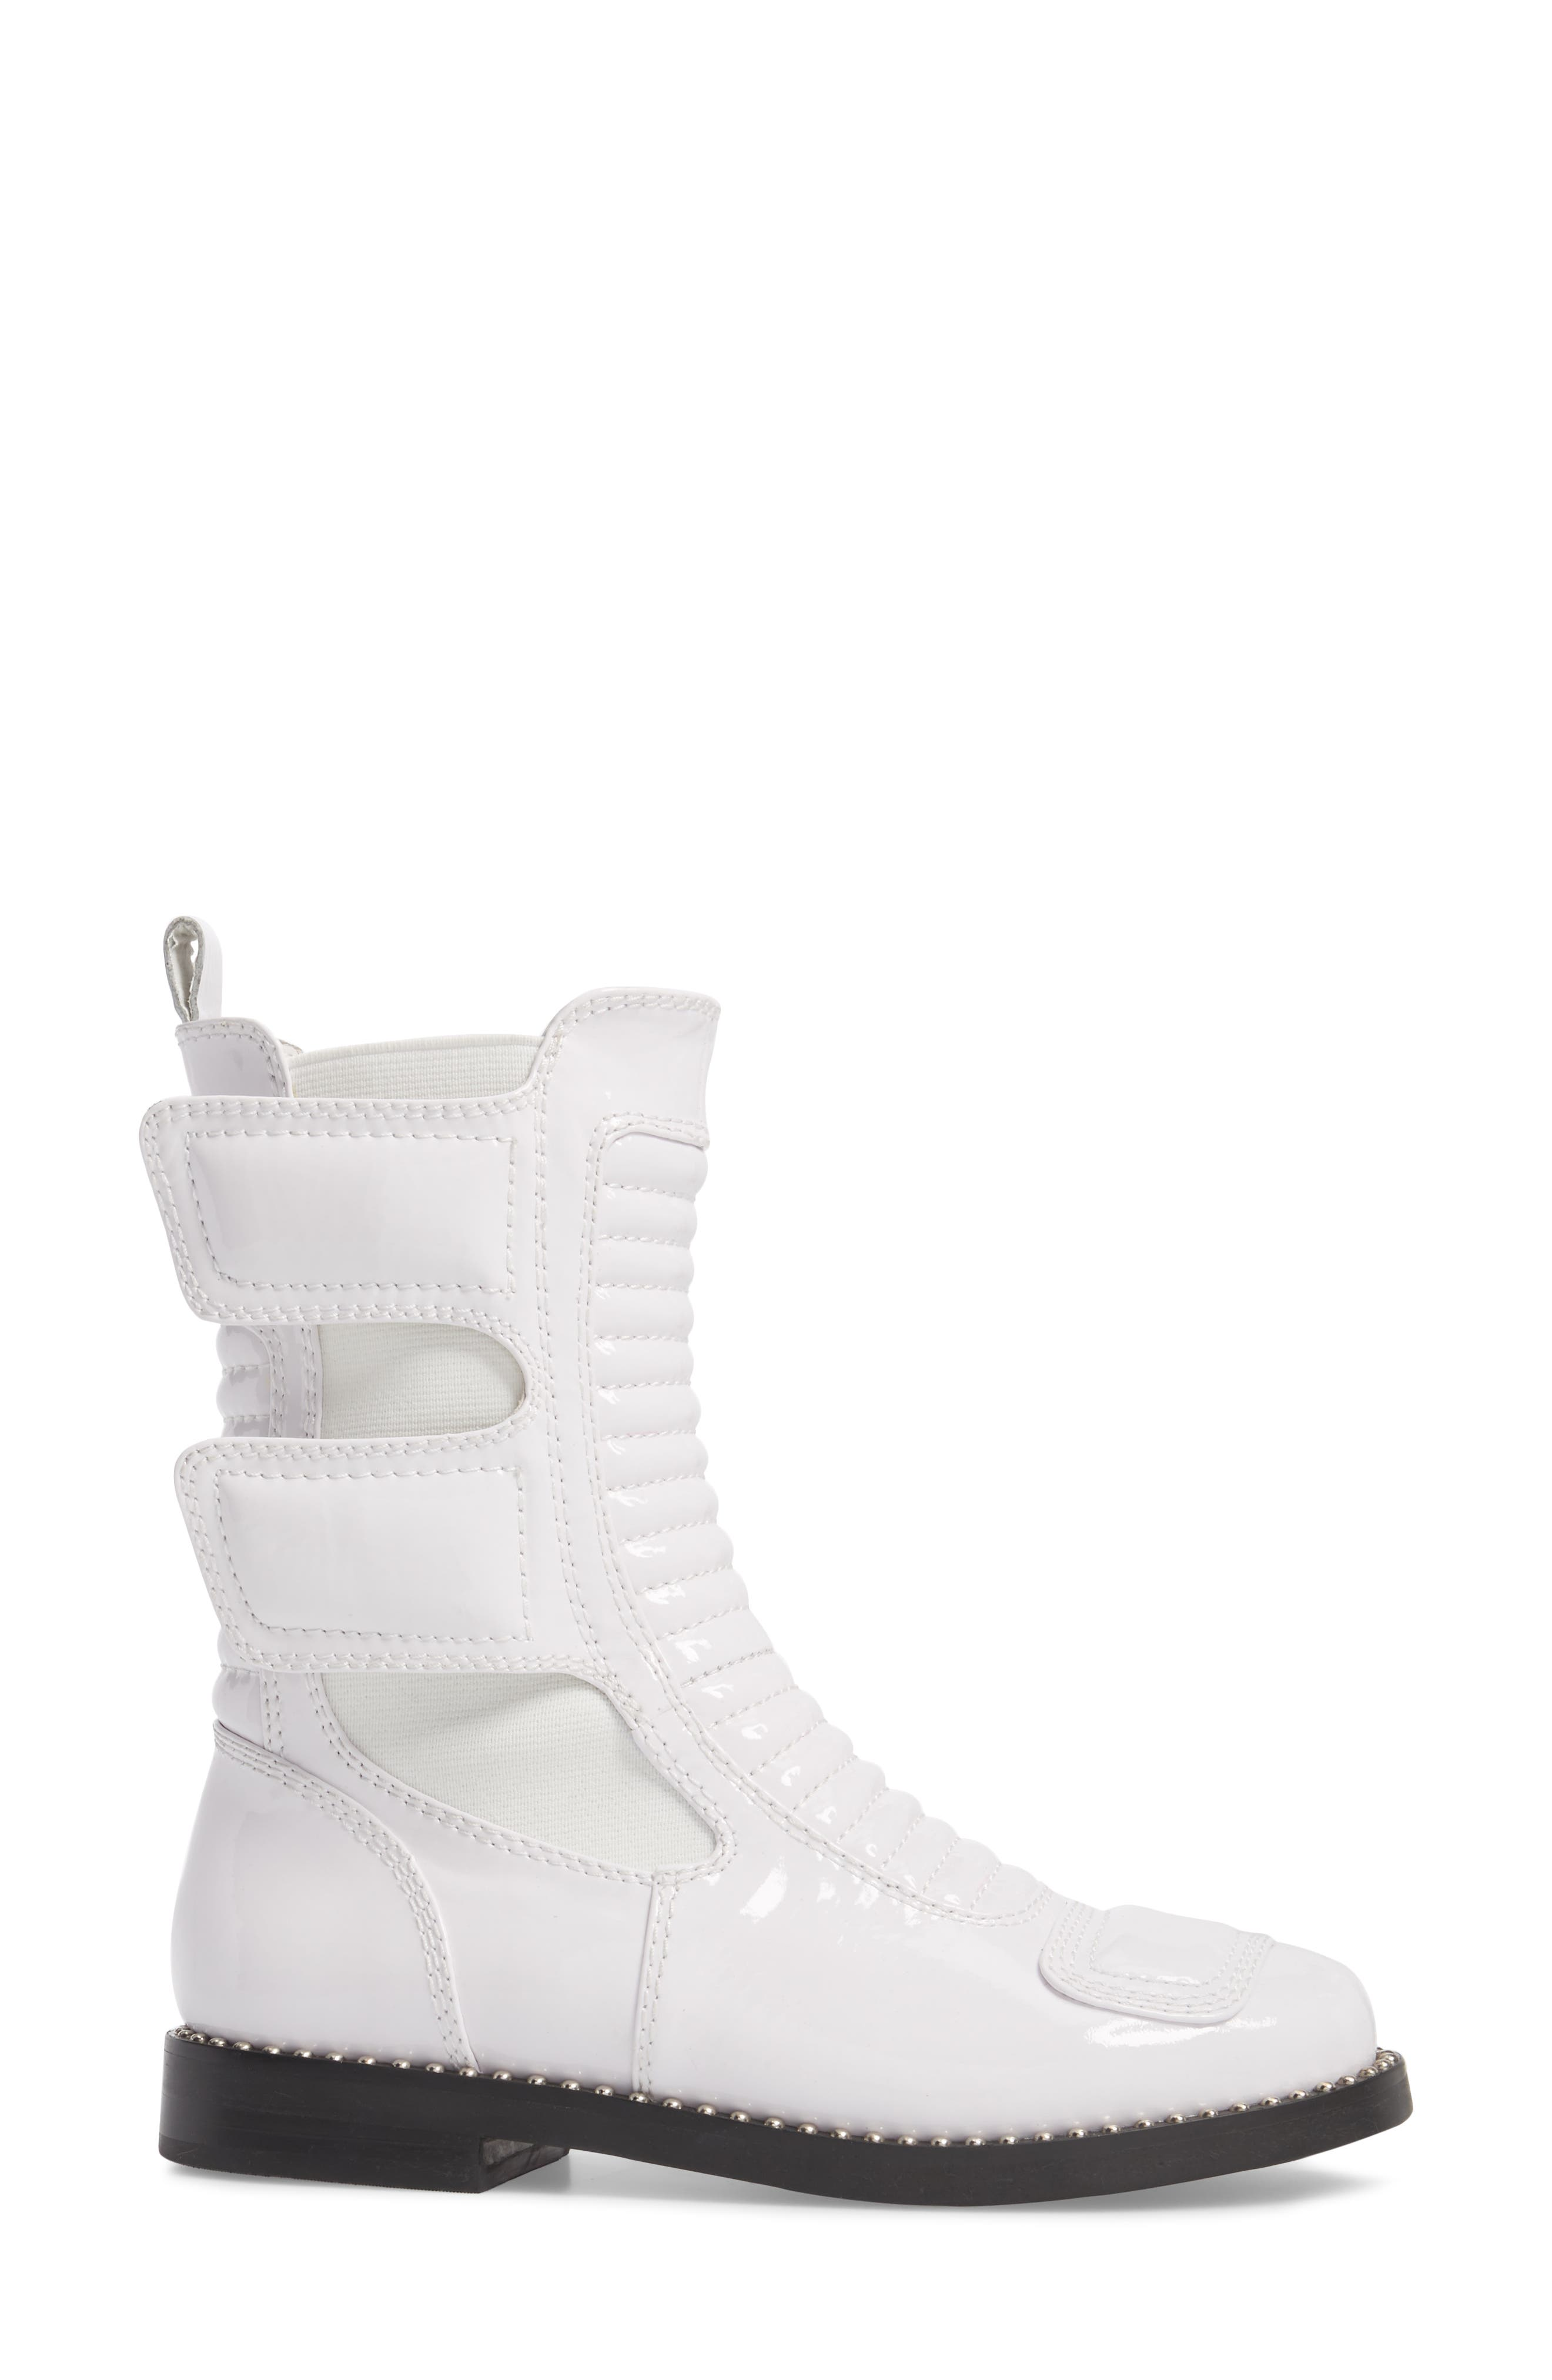 Police Boot,                             Alternate thumbnail 6, color,